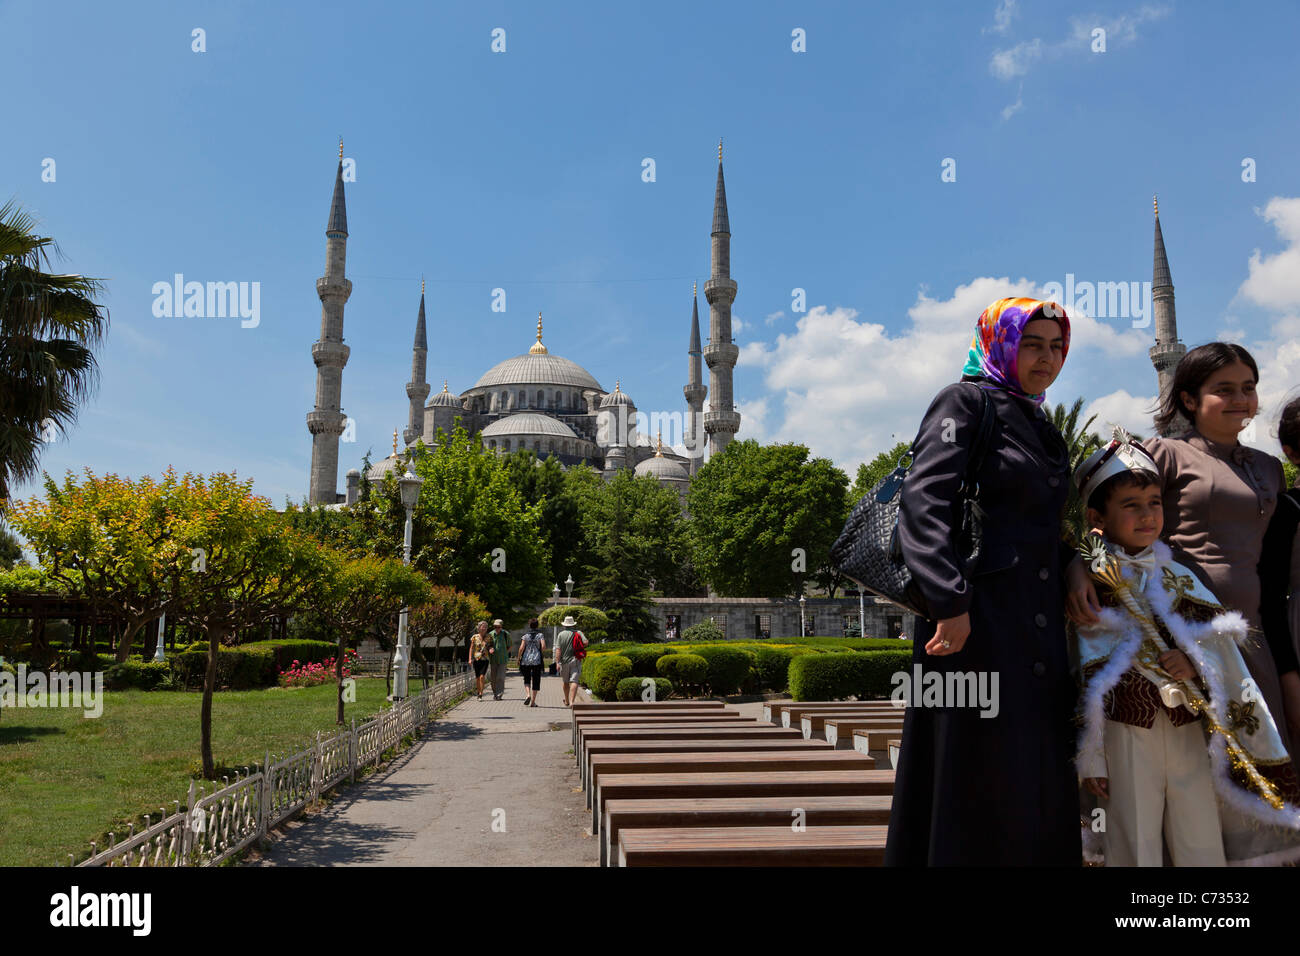 Young Turkish boy in their ceremonial circumcision outfit, posing with his family, outside the The Blue Mosque, Stock Photo